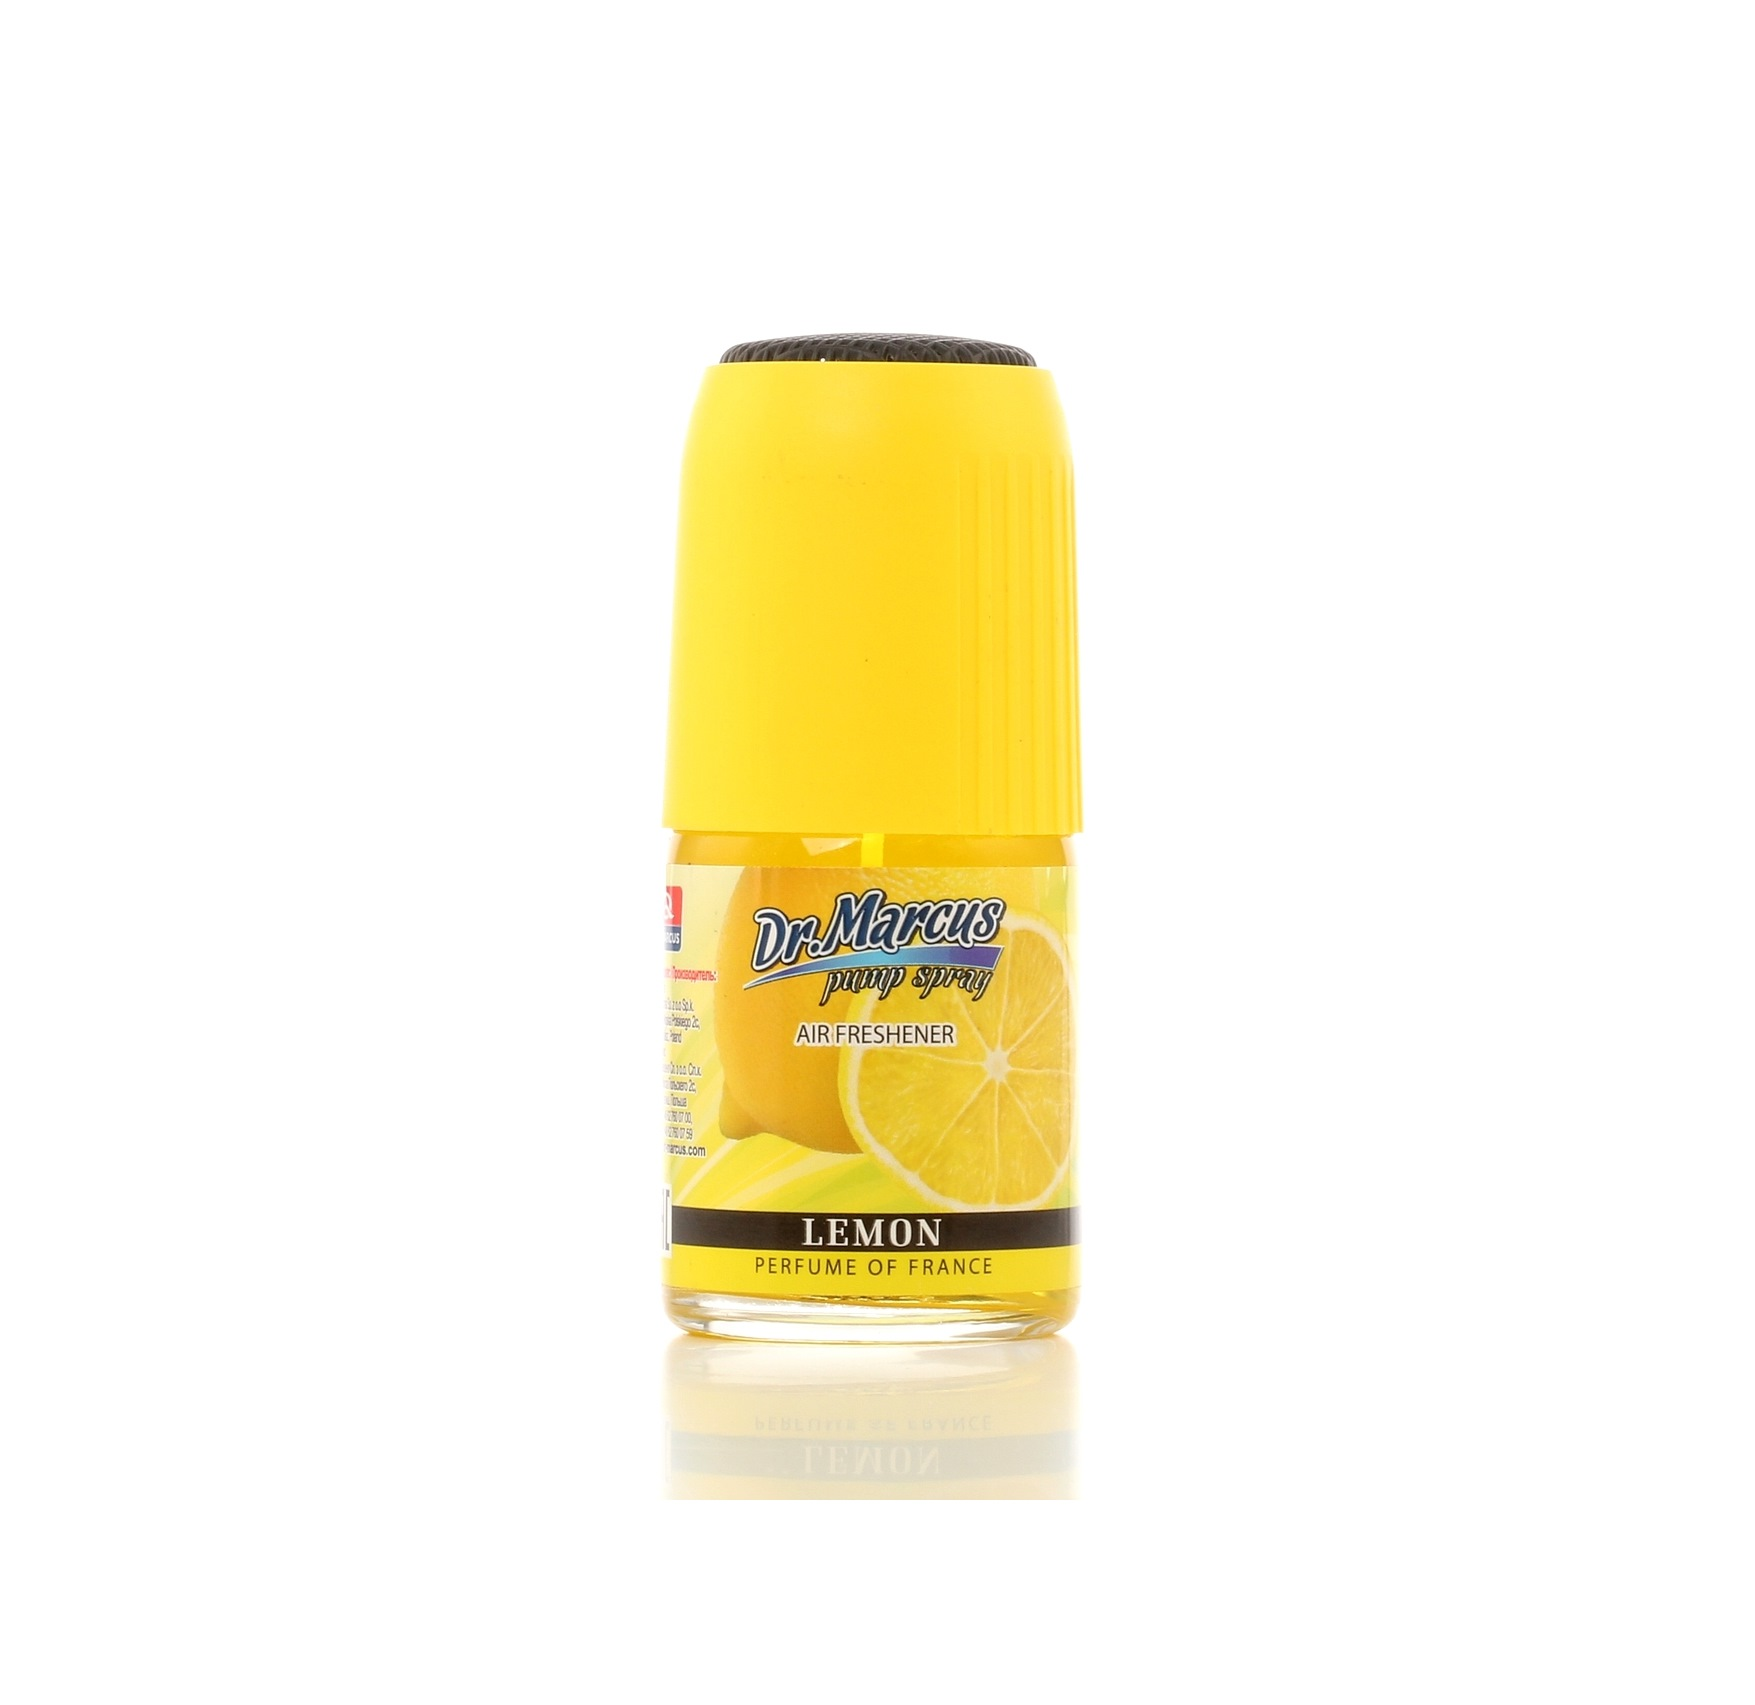 Dr. Marcus Lemon, Pump Spray 50760908 Ароматизатор